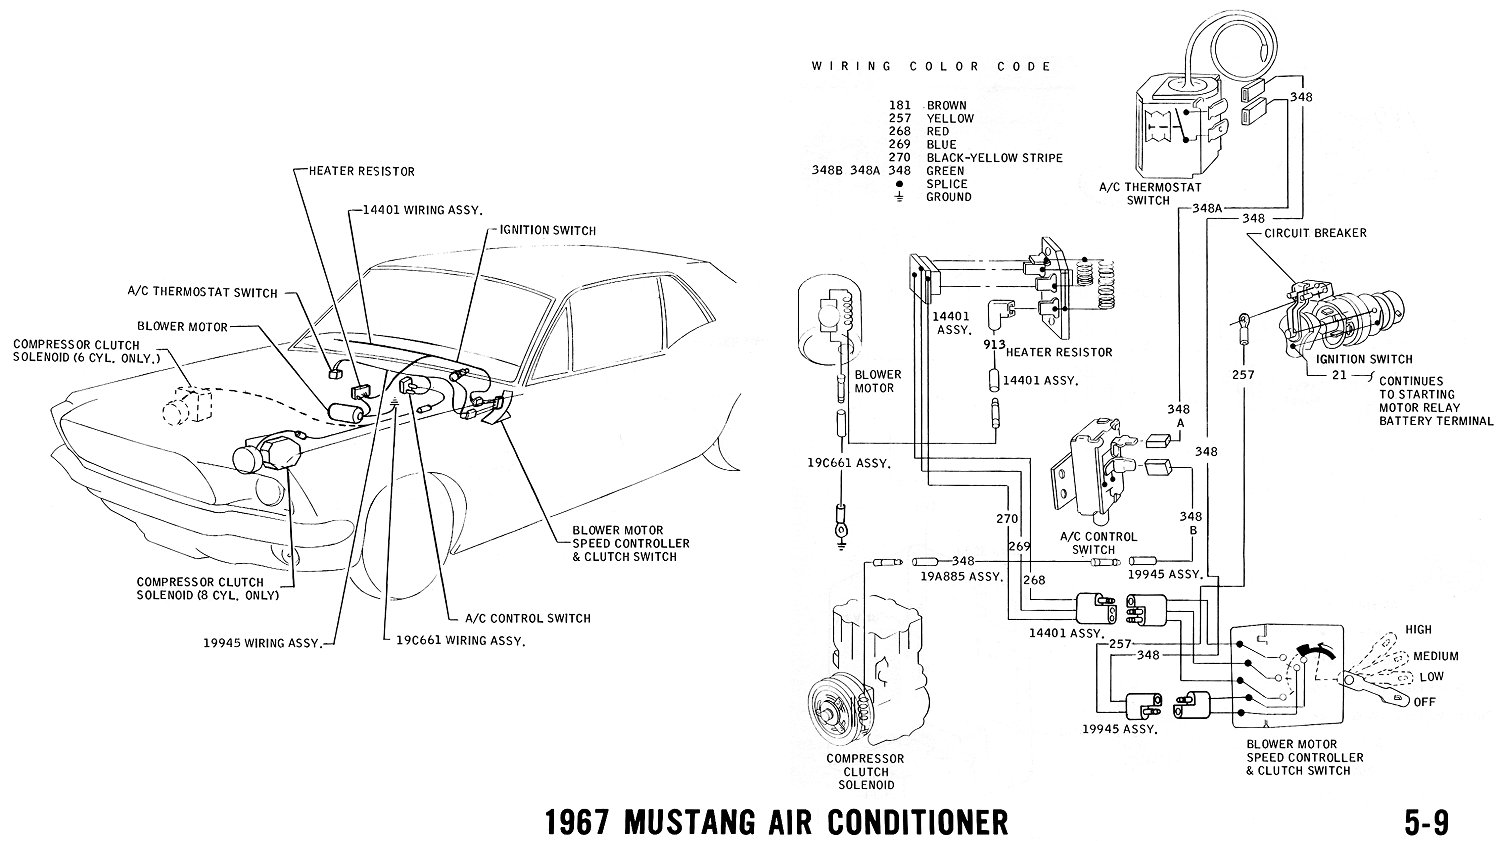 67ac 1970 mustang ac control wiring diagram 1970 ford alternator wiring 1967 mustang instrument cluster wiring diagram at sewacar.co